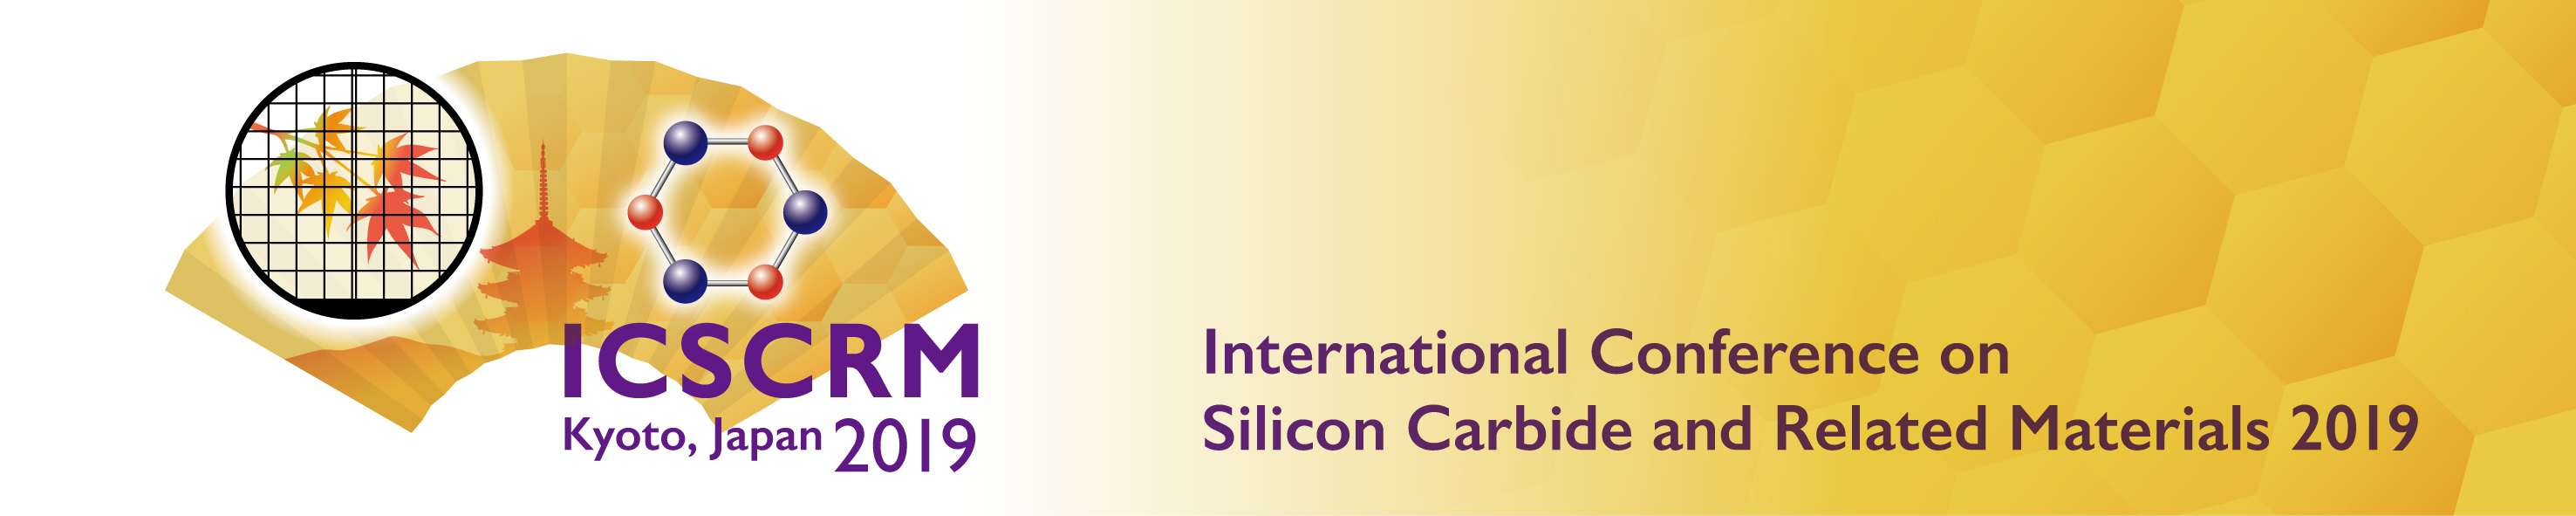 International Conference on Silicon Carbide and Related Materials